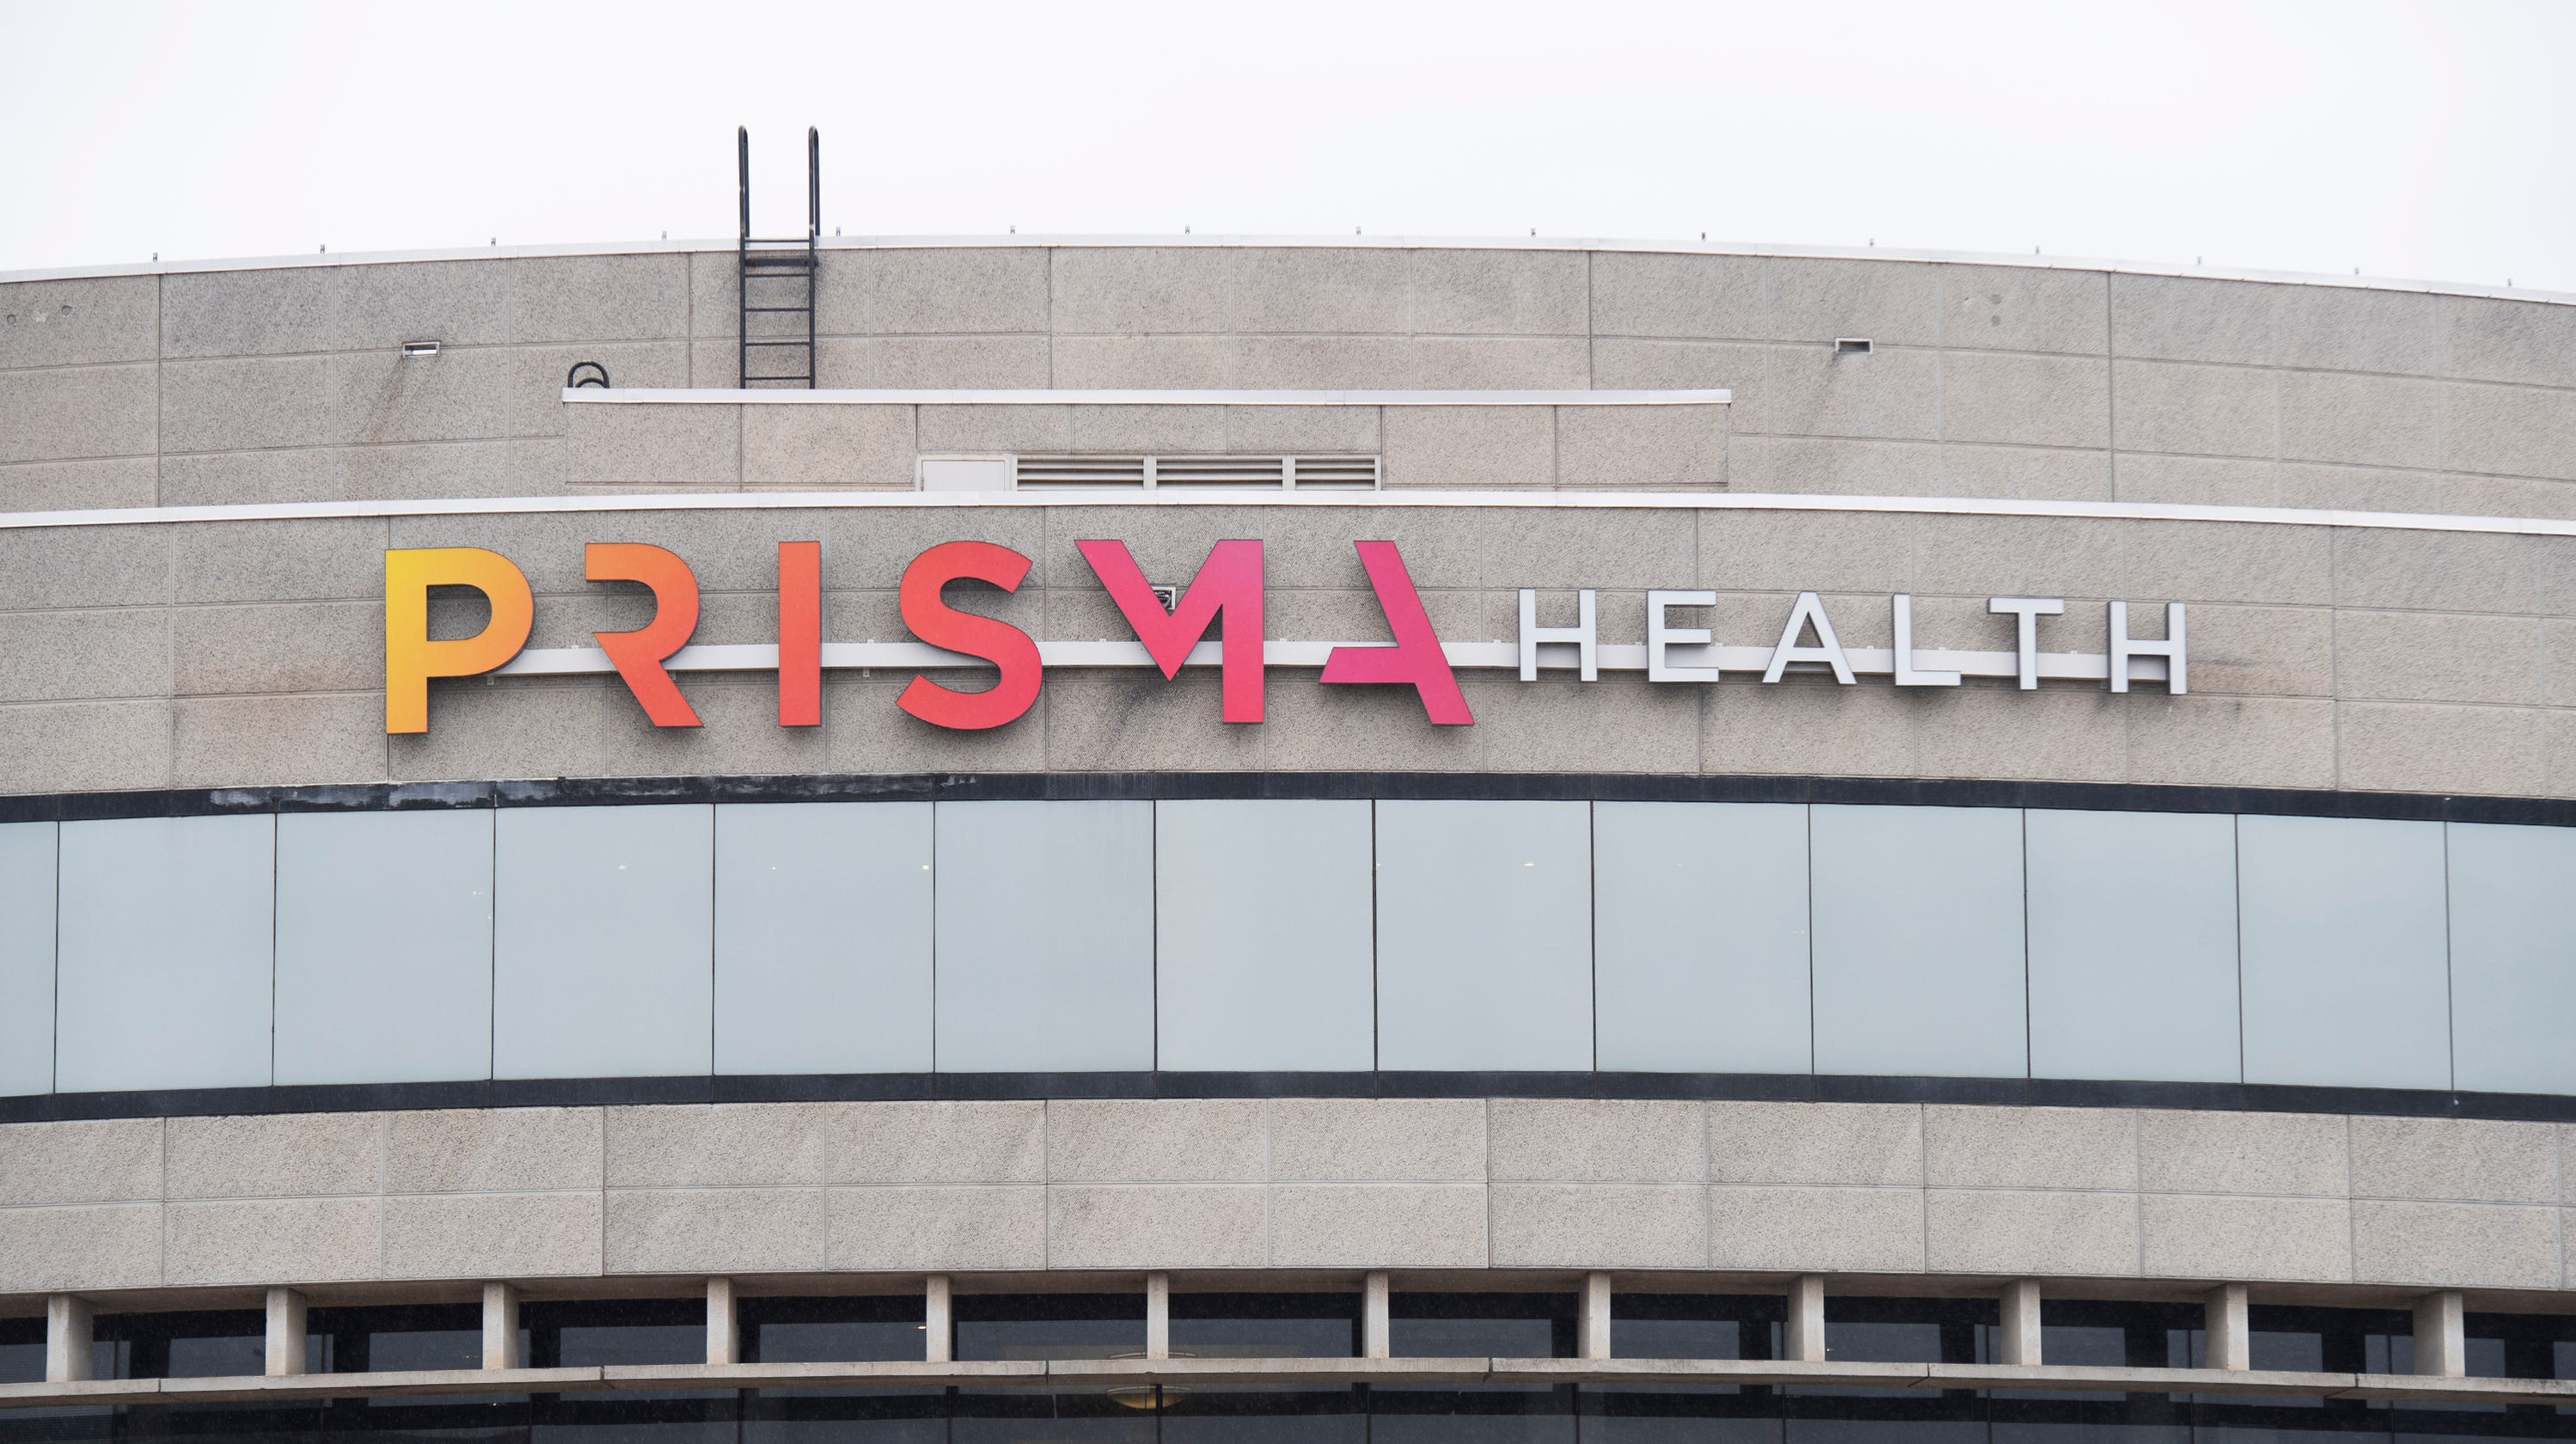 Here's How Prisma Health-Upstate Has Changed In The Last Year